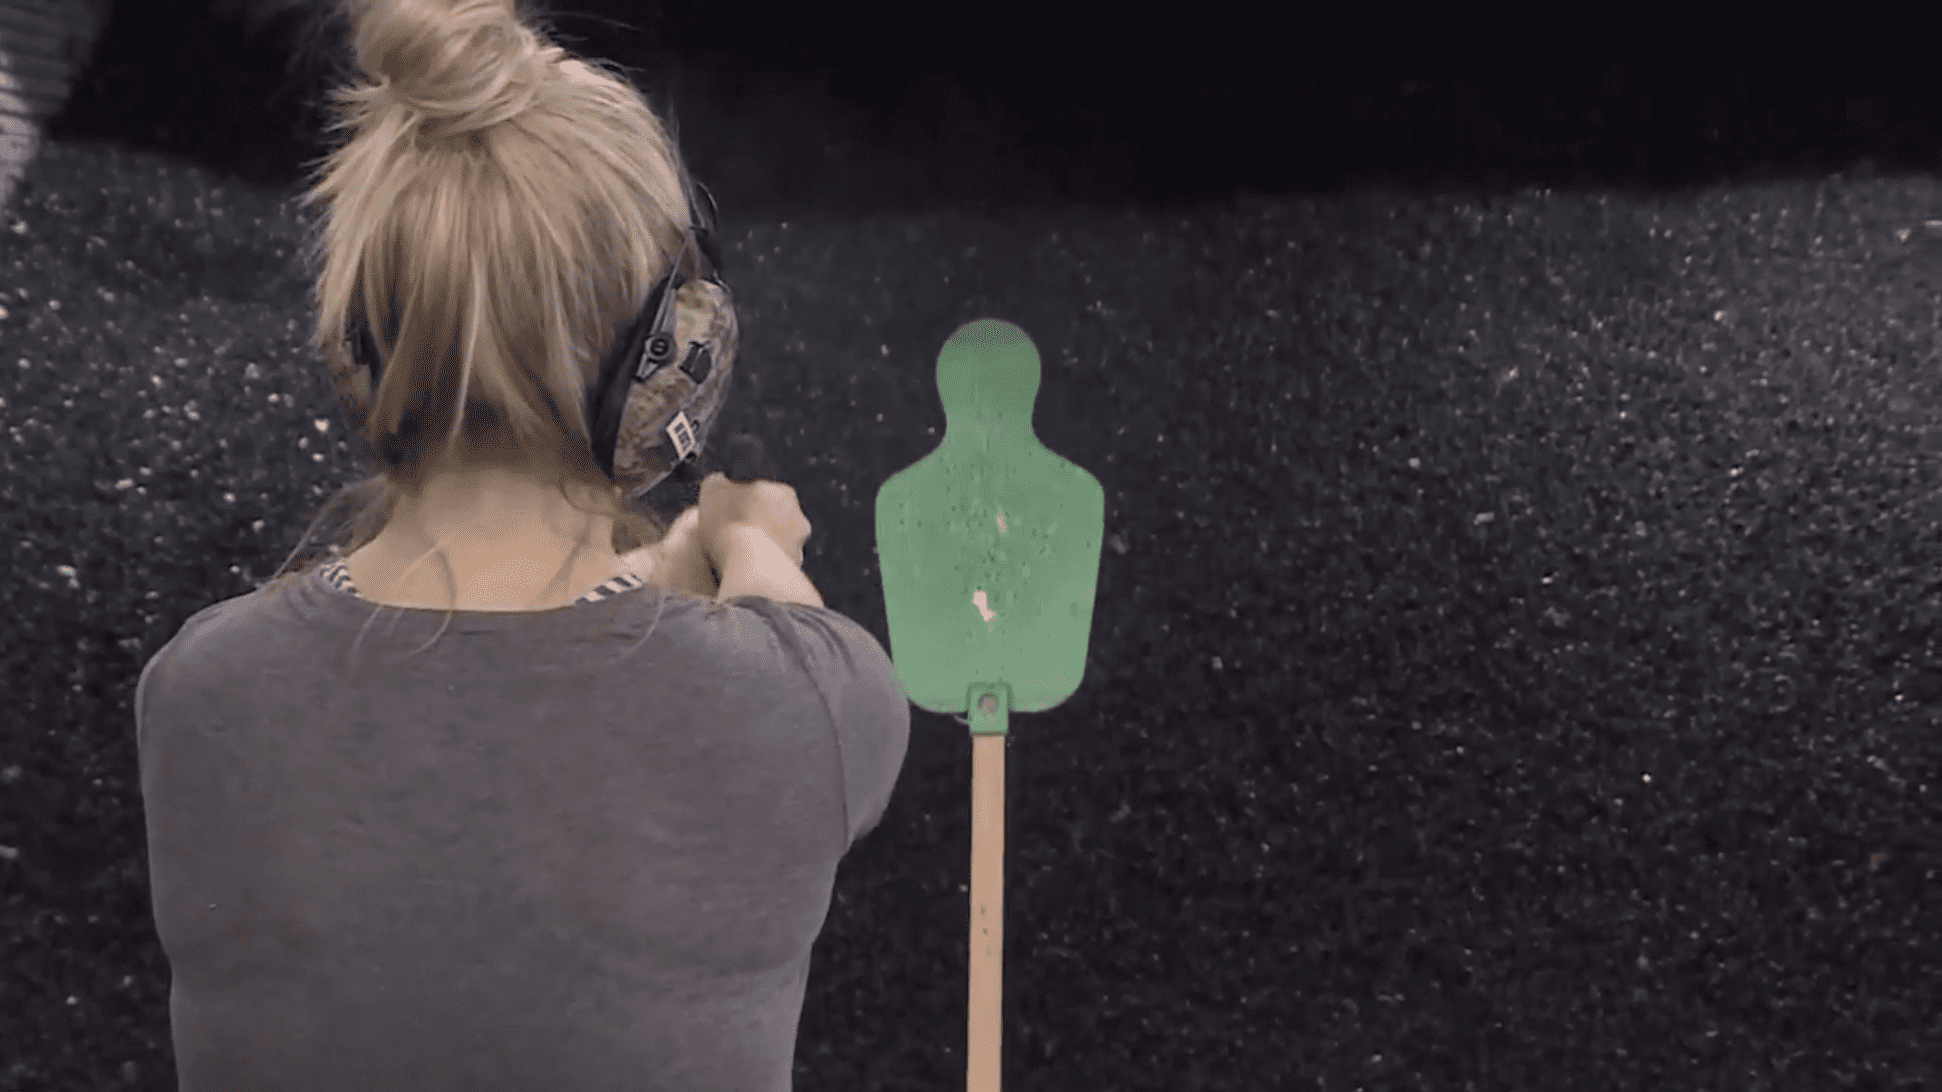 Self defense: When is it legal to use weapons in Nebraska while protecting yourself?